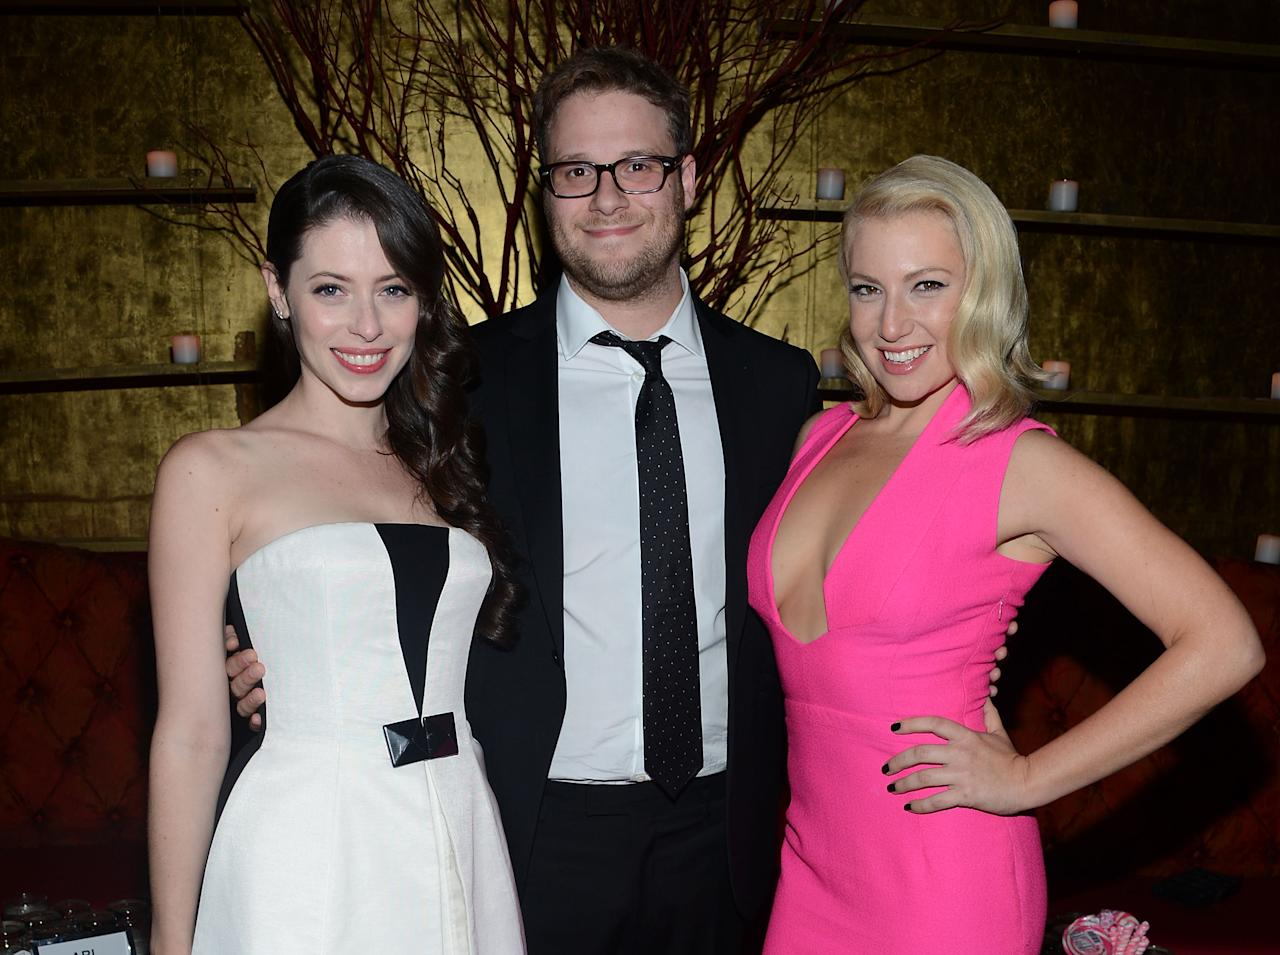 """NEW YORK, NY - AUGUST 21:  Lauren Miller, Seth Rogen and Ari Graynor attend the after party for the """"For A Good Time, Call..."""" premiere at Ajna Bar on August 21, 2012 in New York City.  (Photo by Jason Kempin/Getty Images)"""